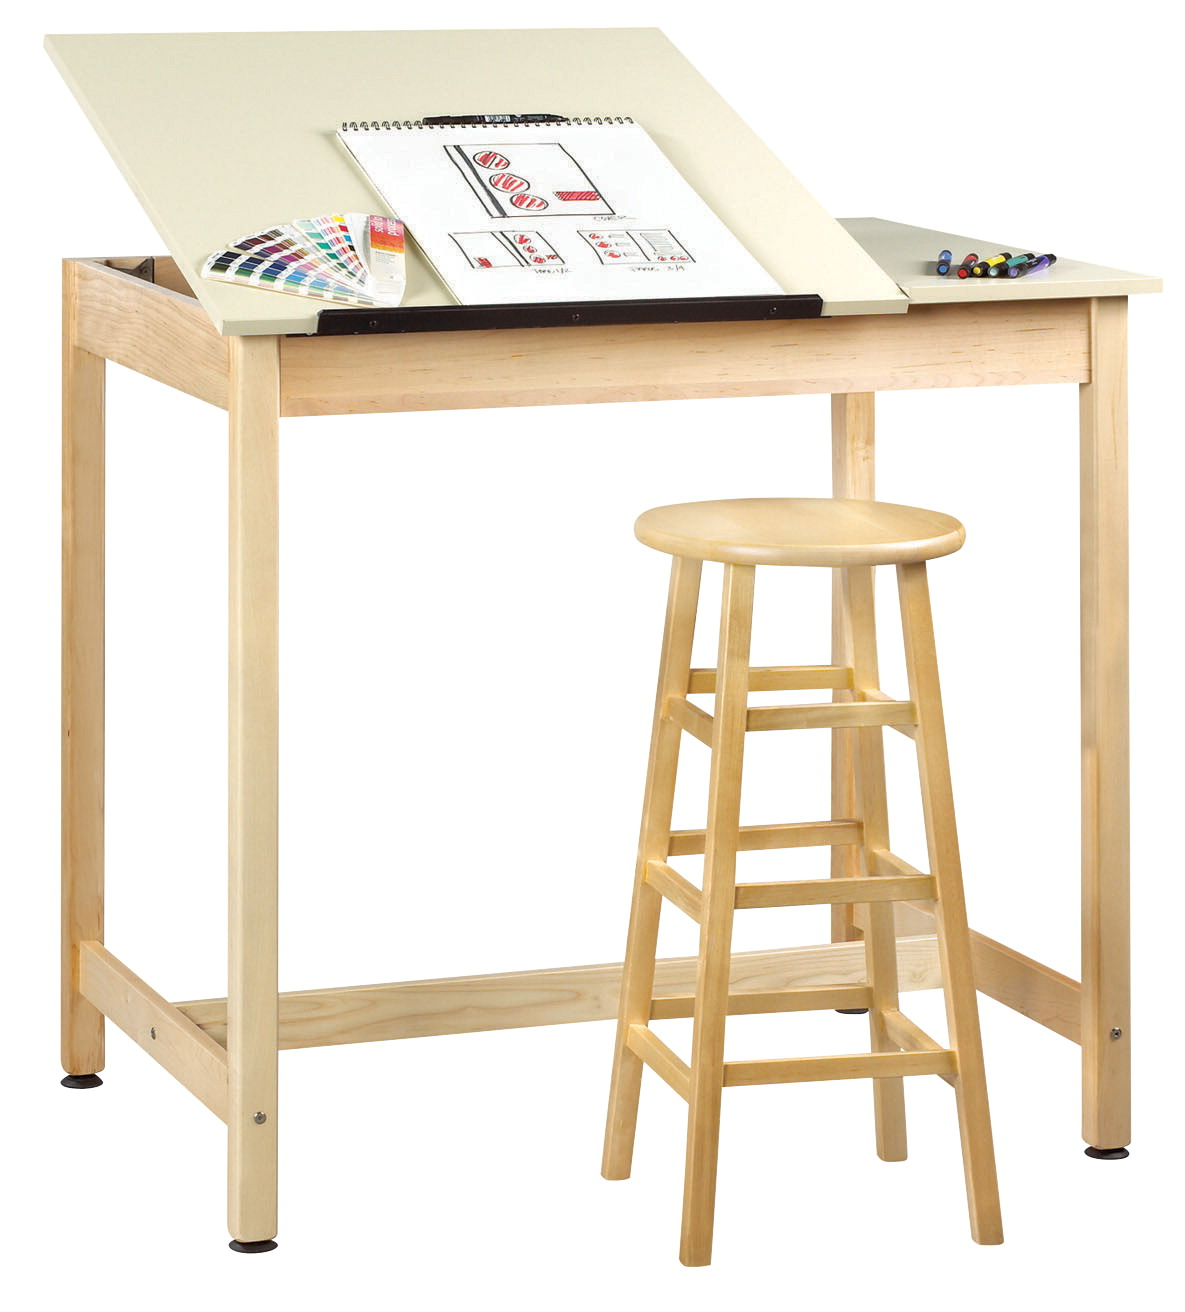 Diversified Woodcrafts Drafting Table, Split Top, 42 x 30 x 39-3/4 Inches, Almond Colored Plastic Laminate Top